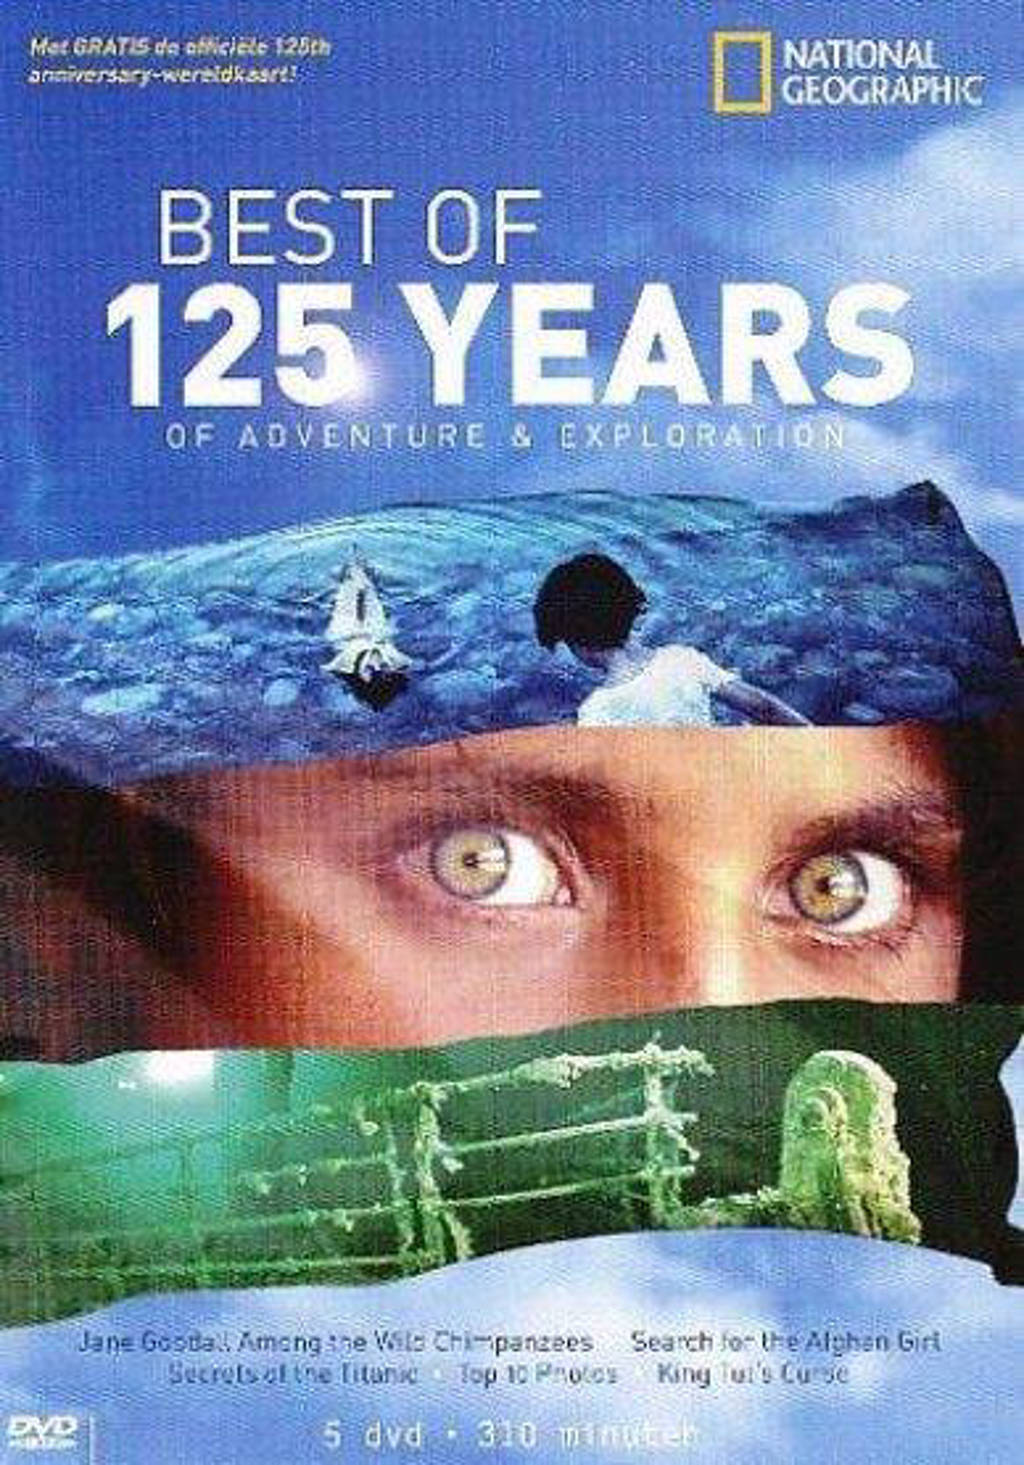 National geographic - 125 years of exploration (DVD)